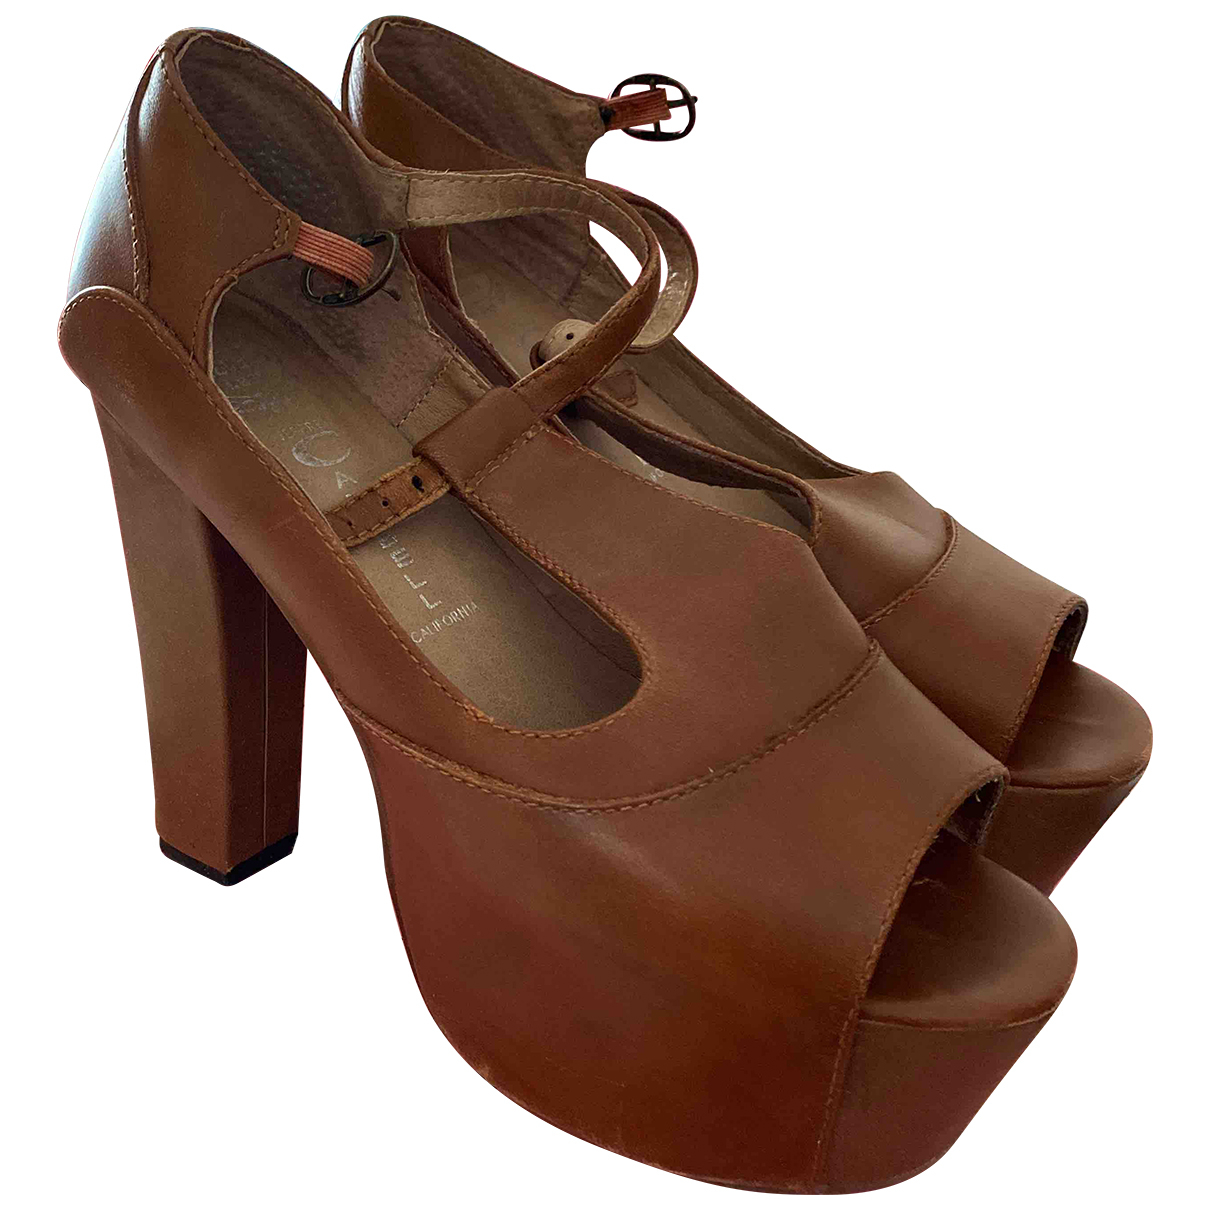 Jeffrey Campbell \N Brown Leather Sandals for Women 37 EU